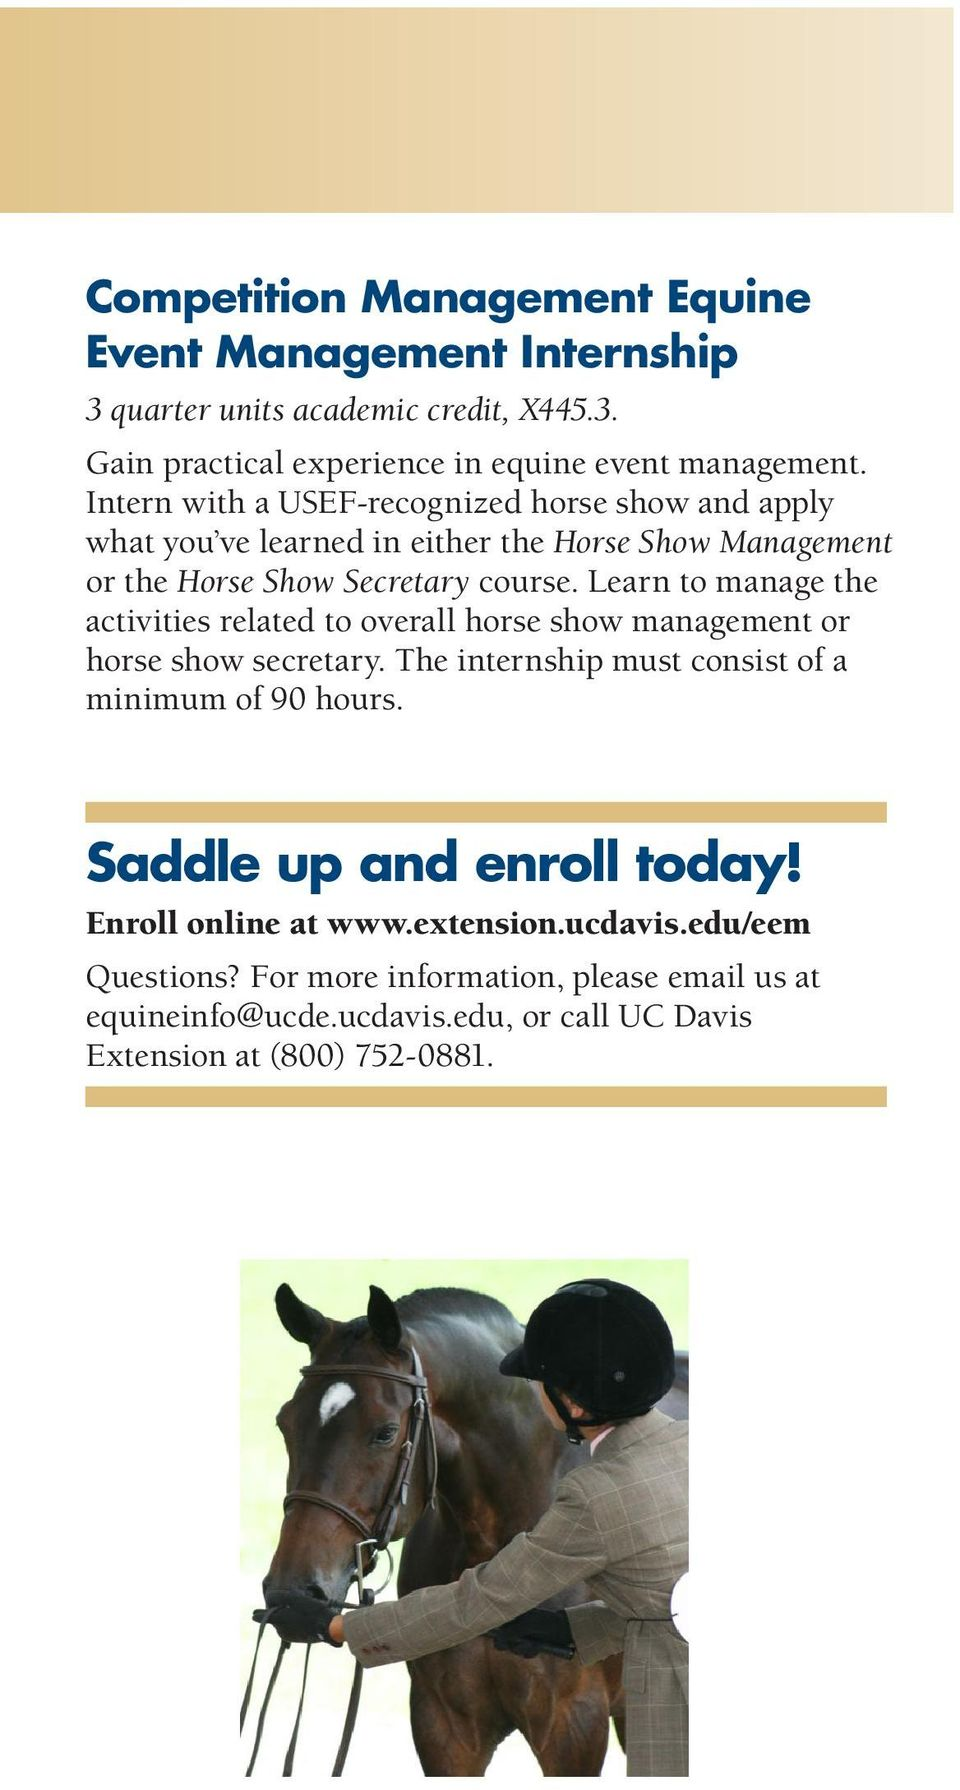 Learn to manage the activities related to overall horse show management or horse show secretary. The internship must consist of a minimum of 90 hours.